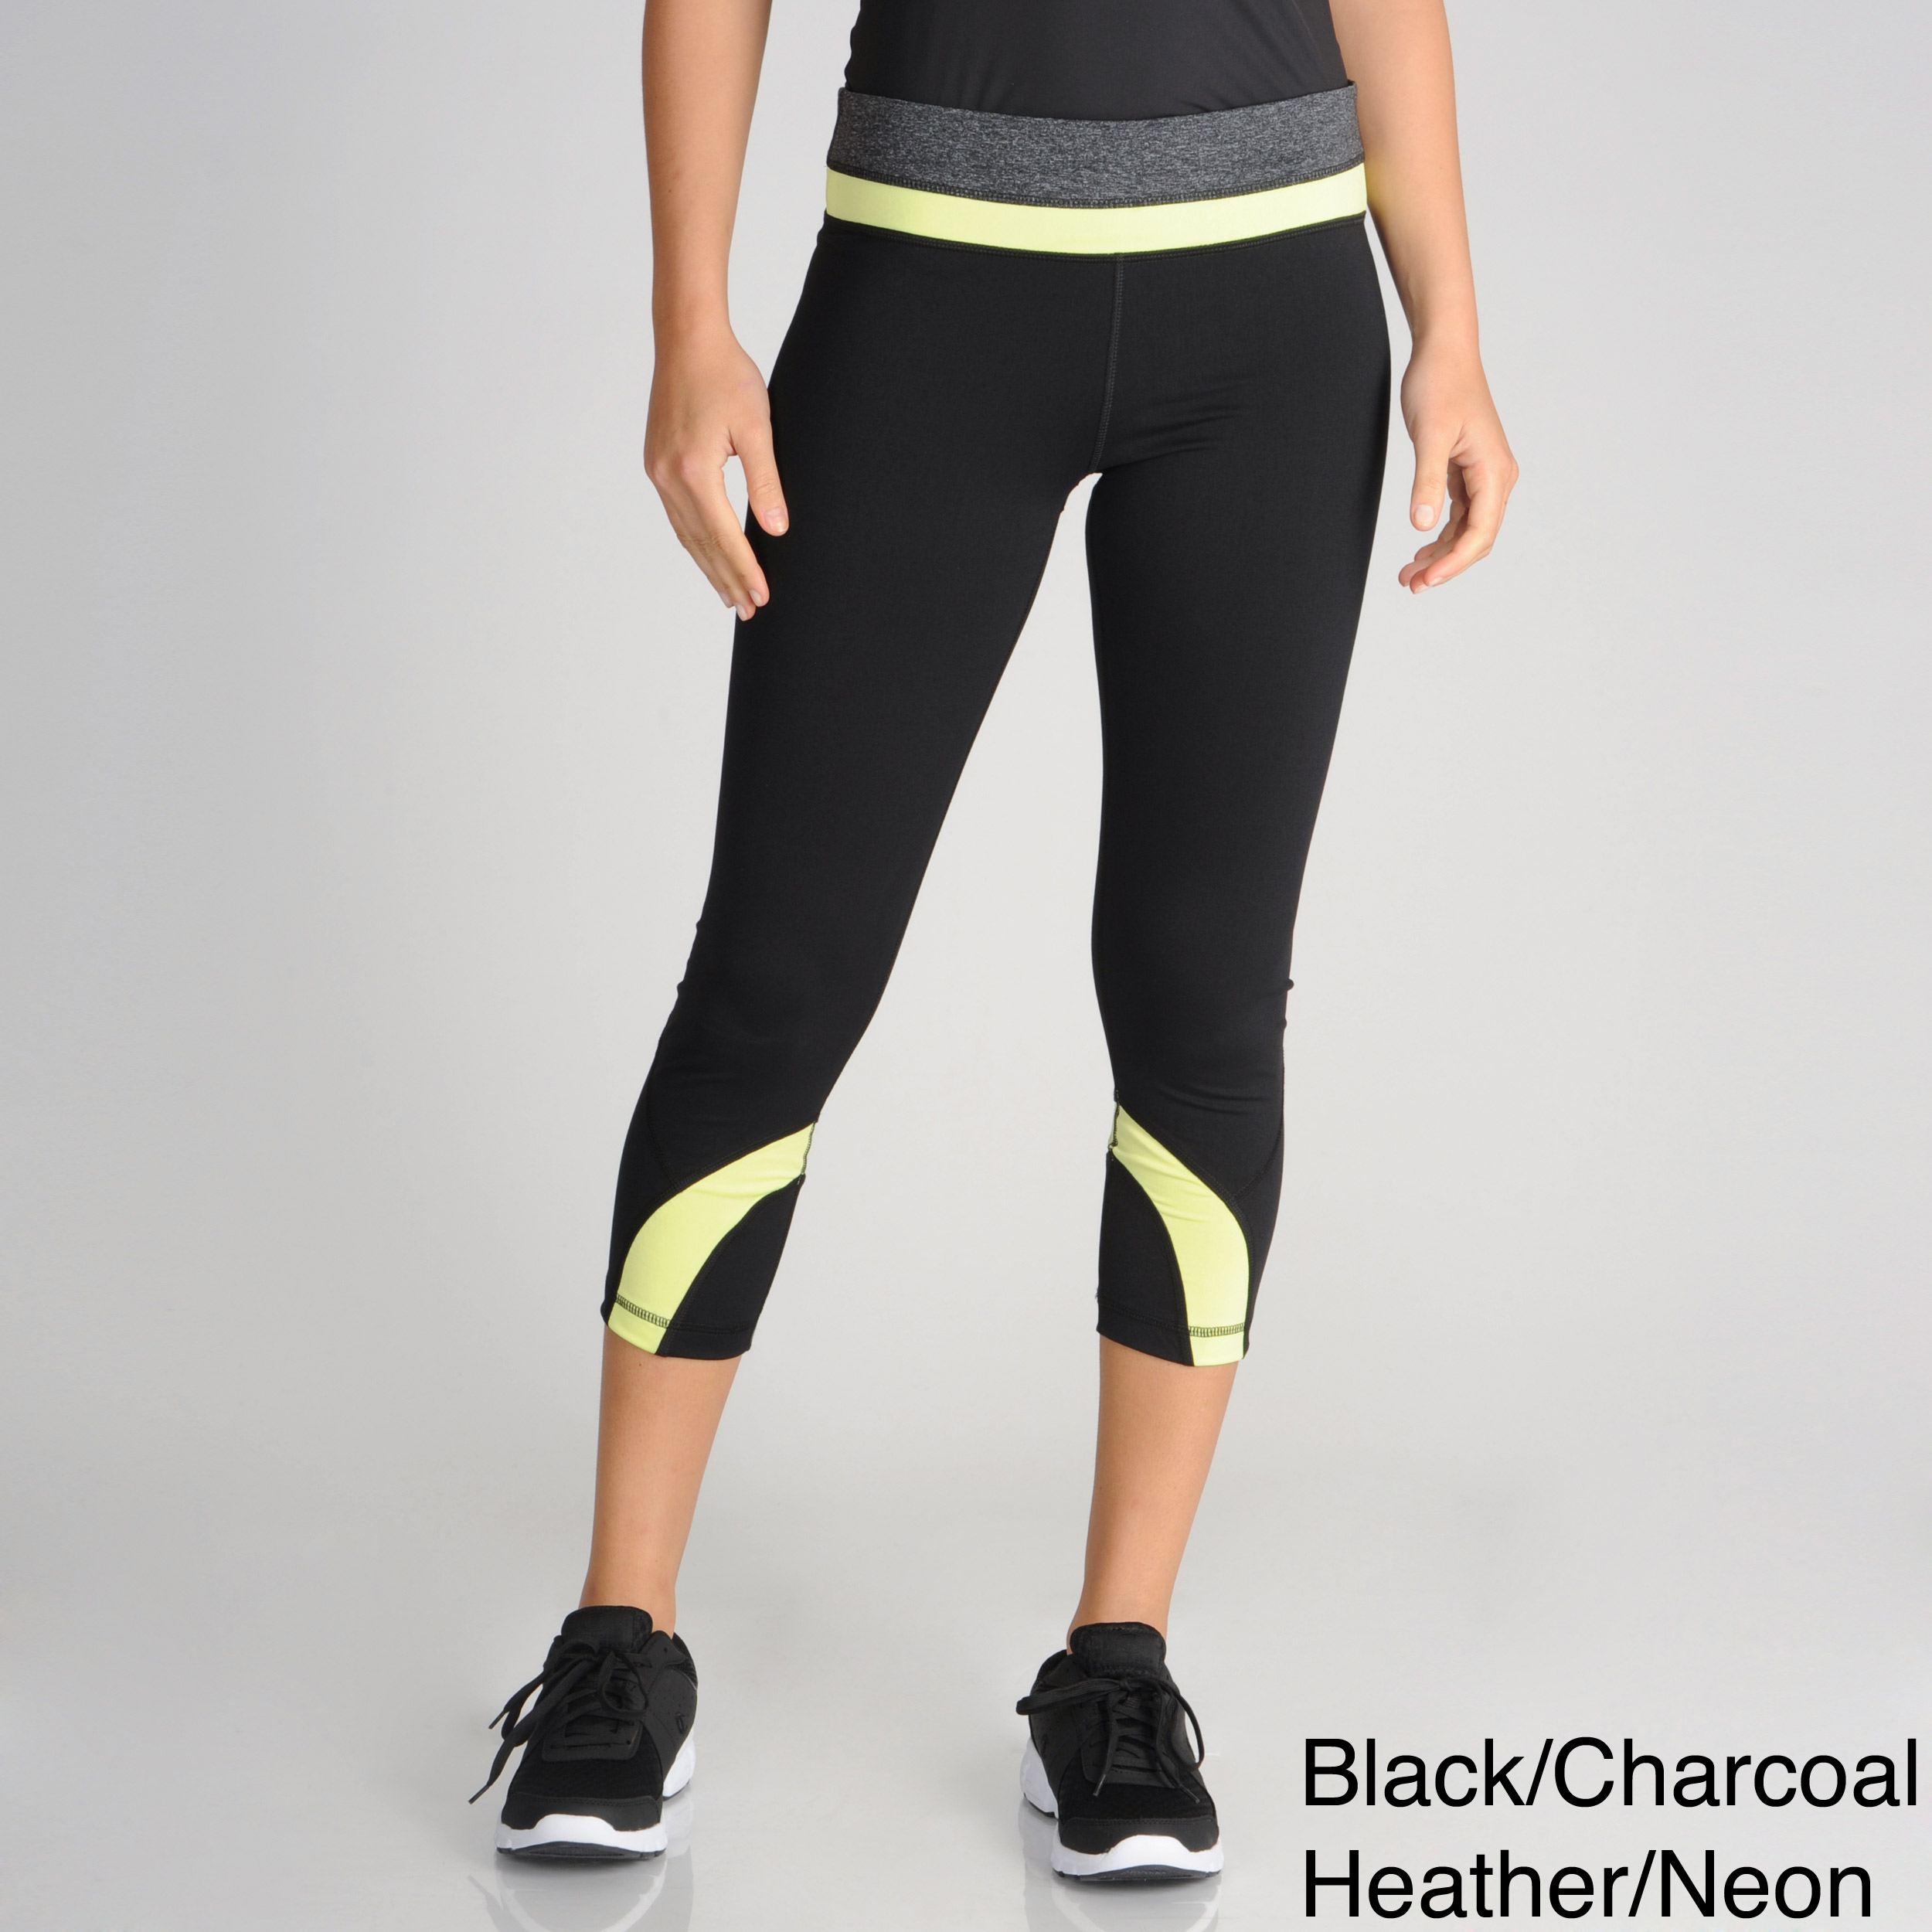 fdfbf723fffbe8 Shop 90 Degree by Reflex Women's Active Color-block Capris - Free Shipping  Today - Overstock - 7576776